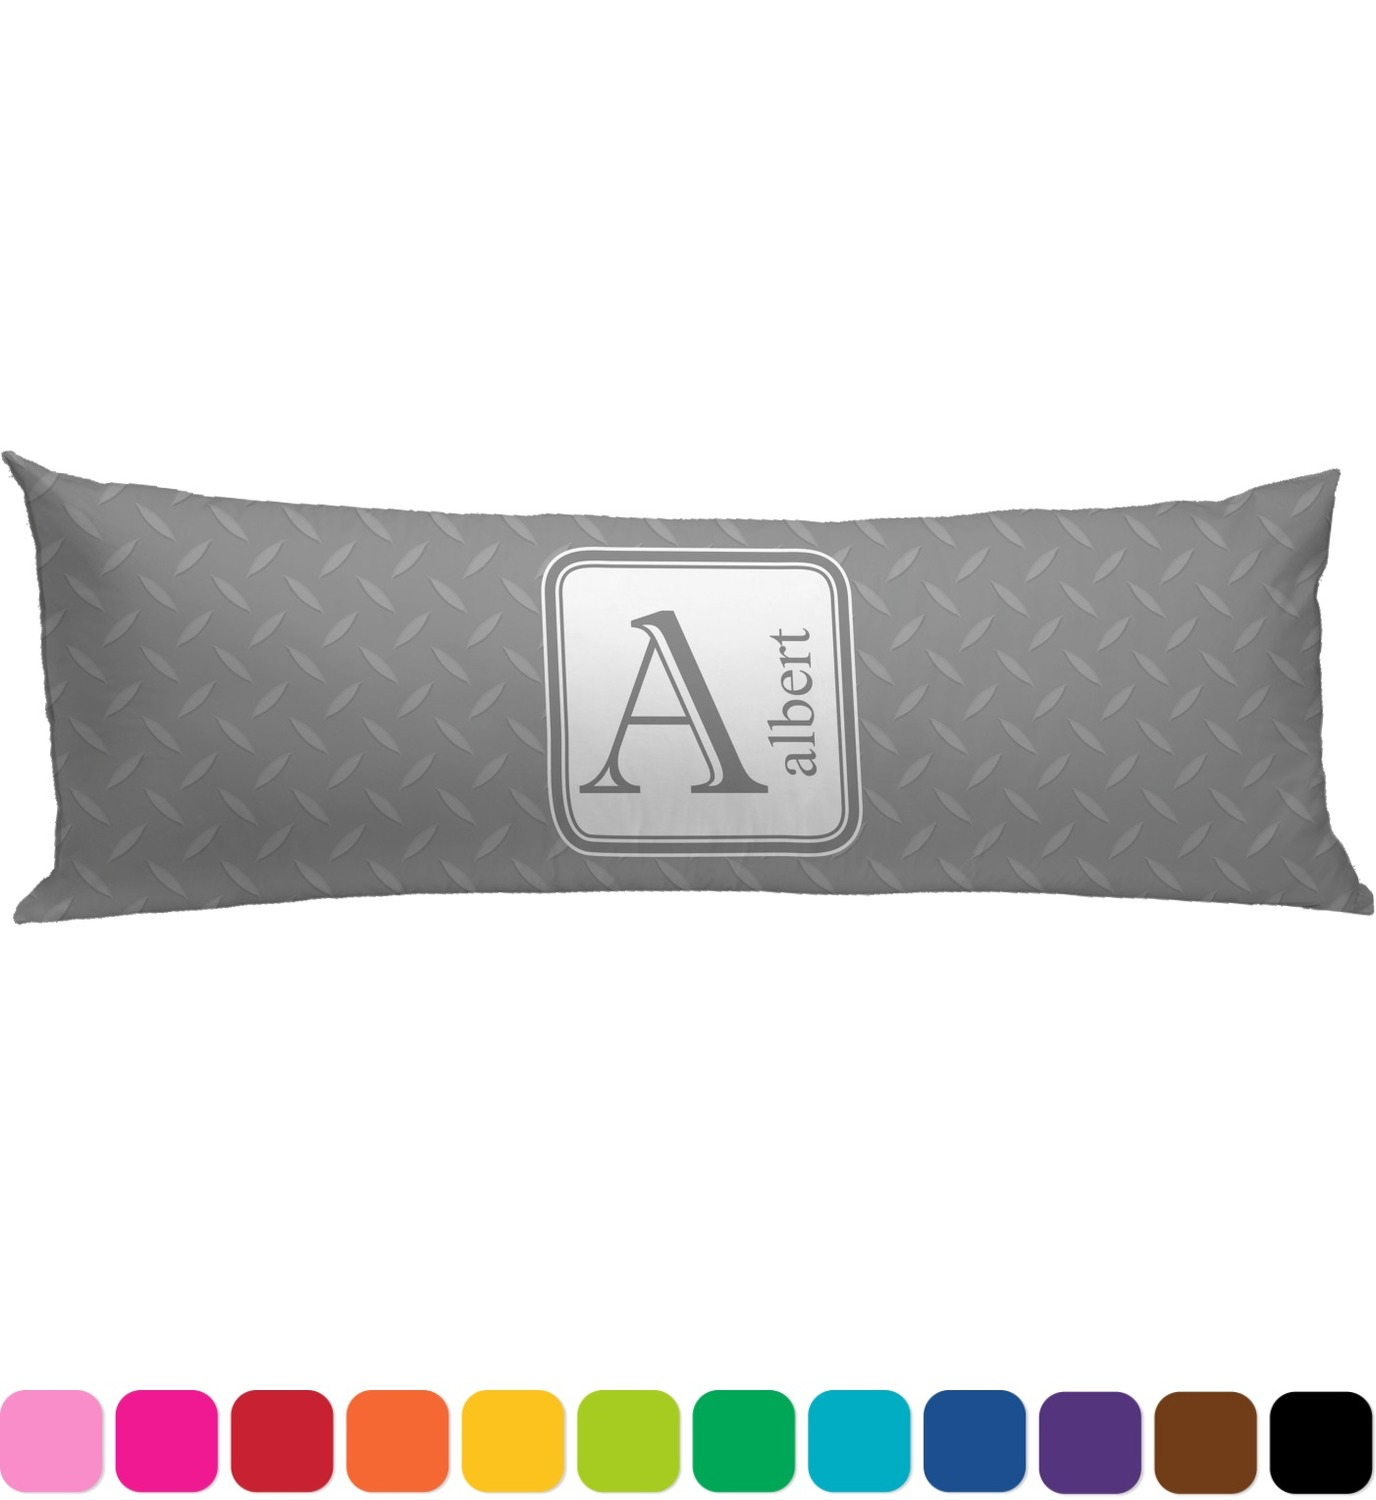 good pillows custom body pillow for case cases picture